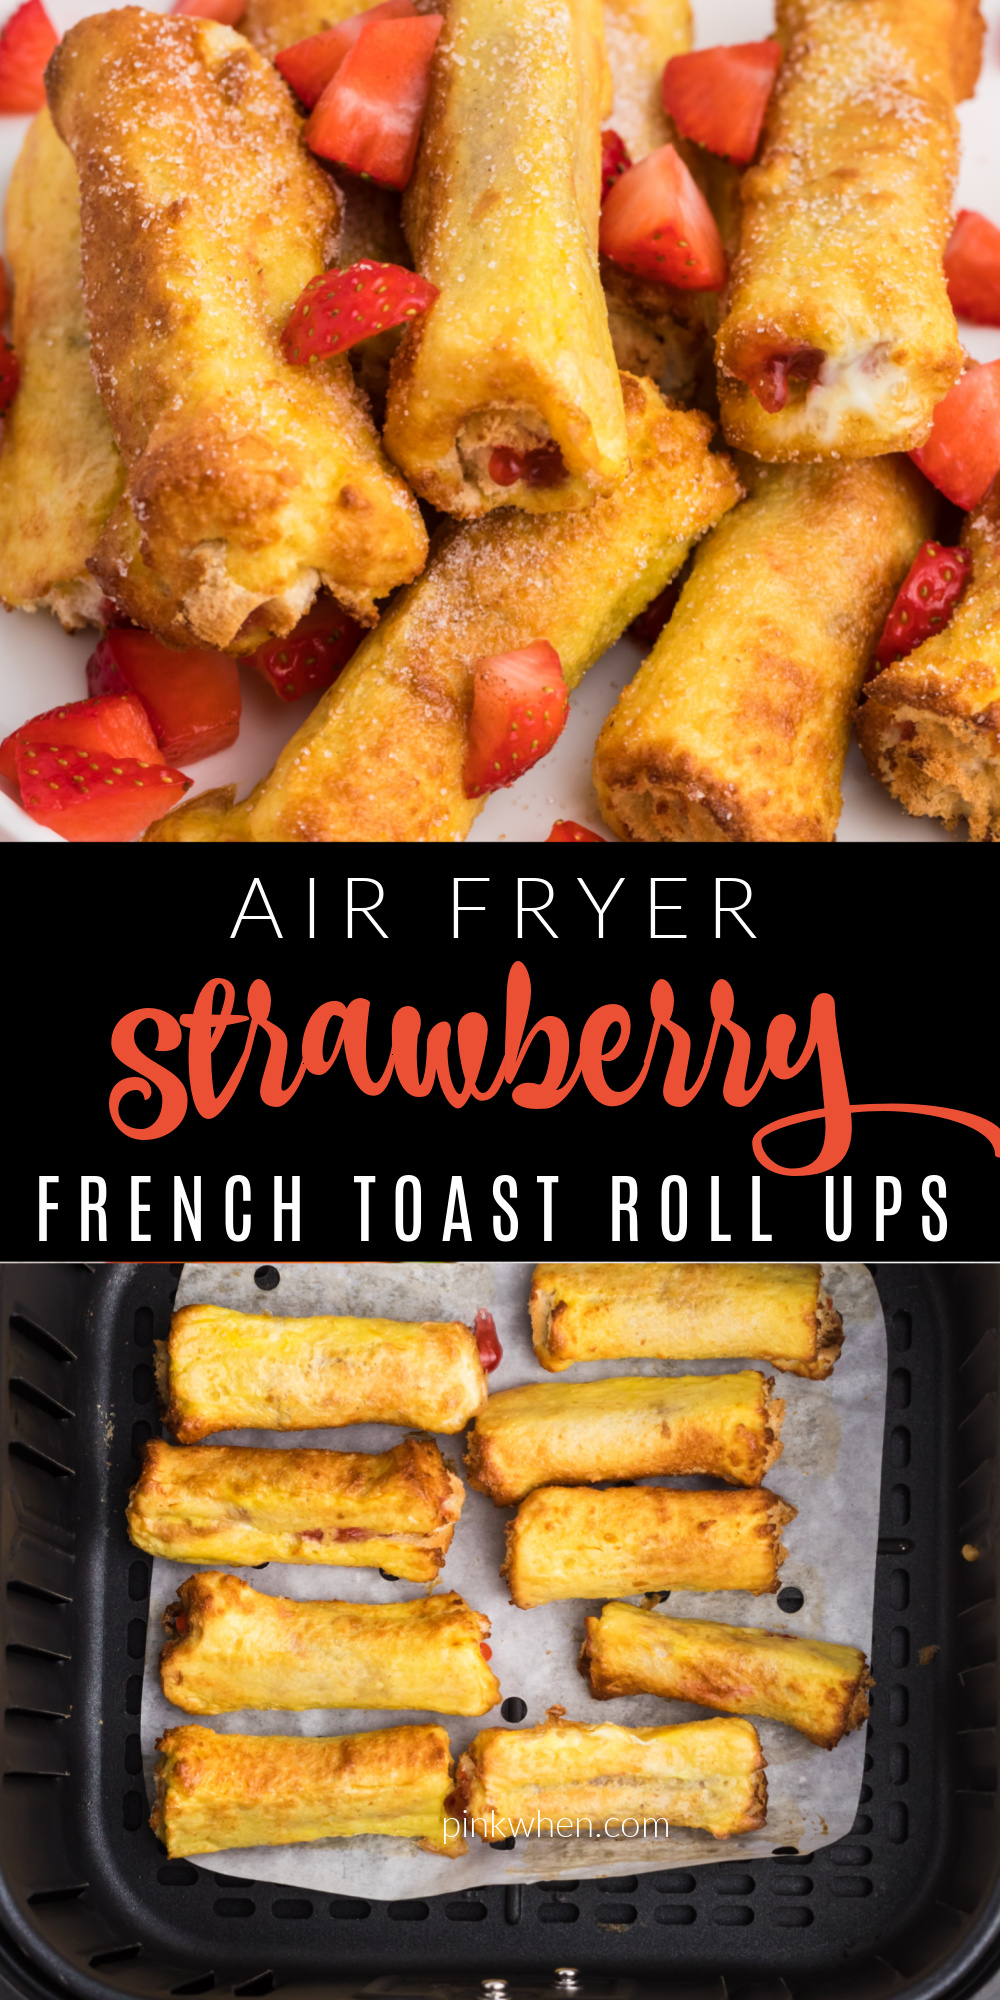 Air Fryer Strawberry French Toast Roll Ups are the fastest way to get my kids moving in the morning! Made with bread, eggs, cinnamon, sugar, strawberry preserves, and more! It's an easy air fryer recipe that's full of flavor the entire family loves.